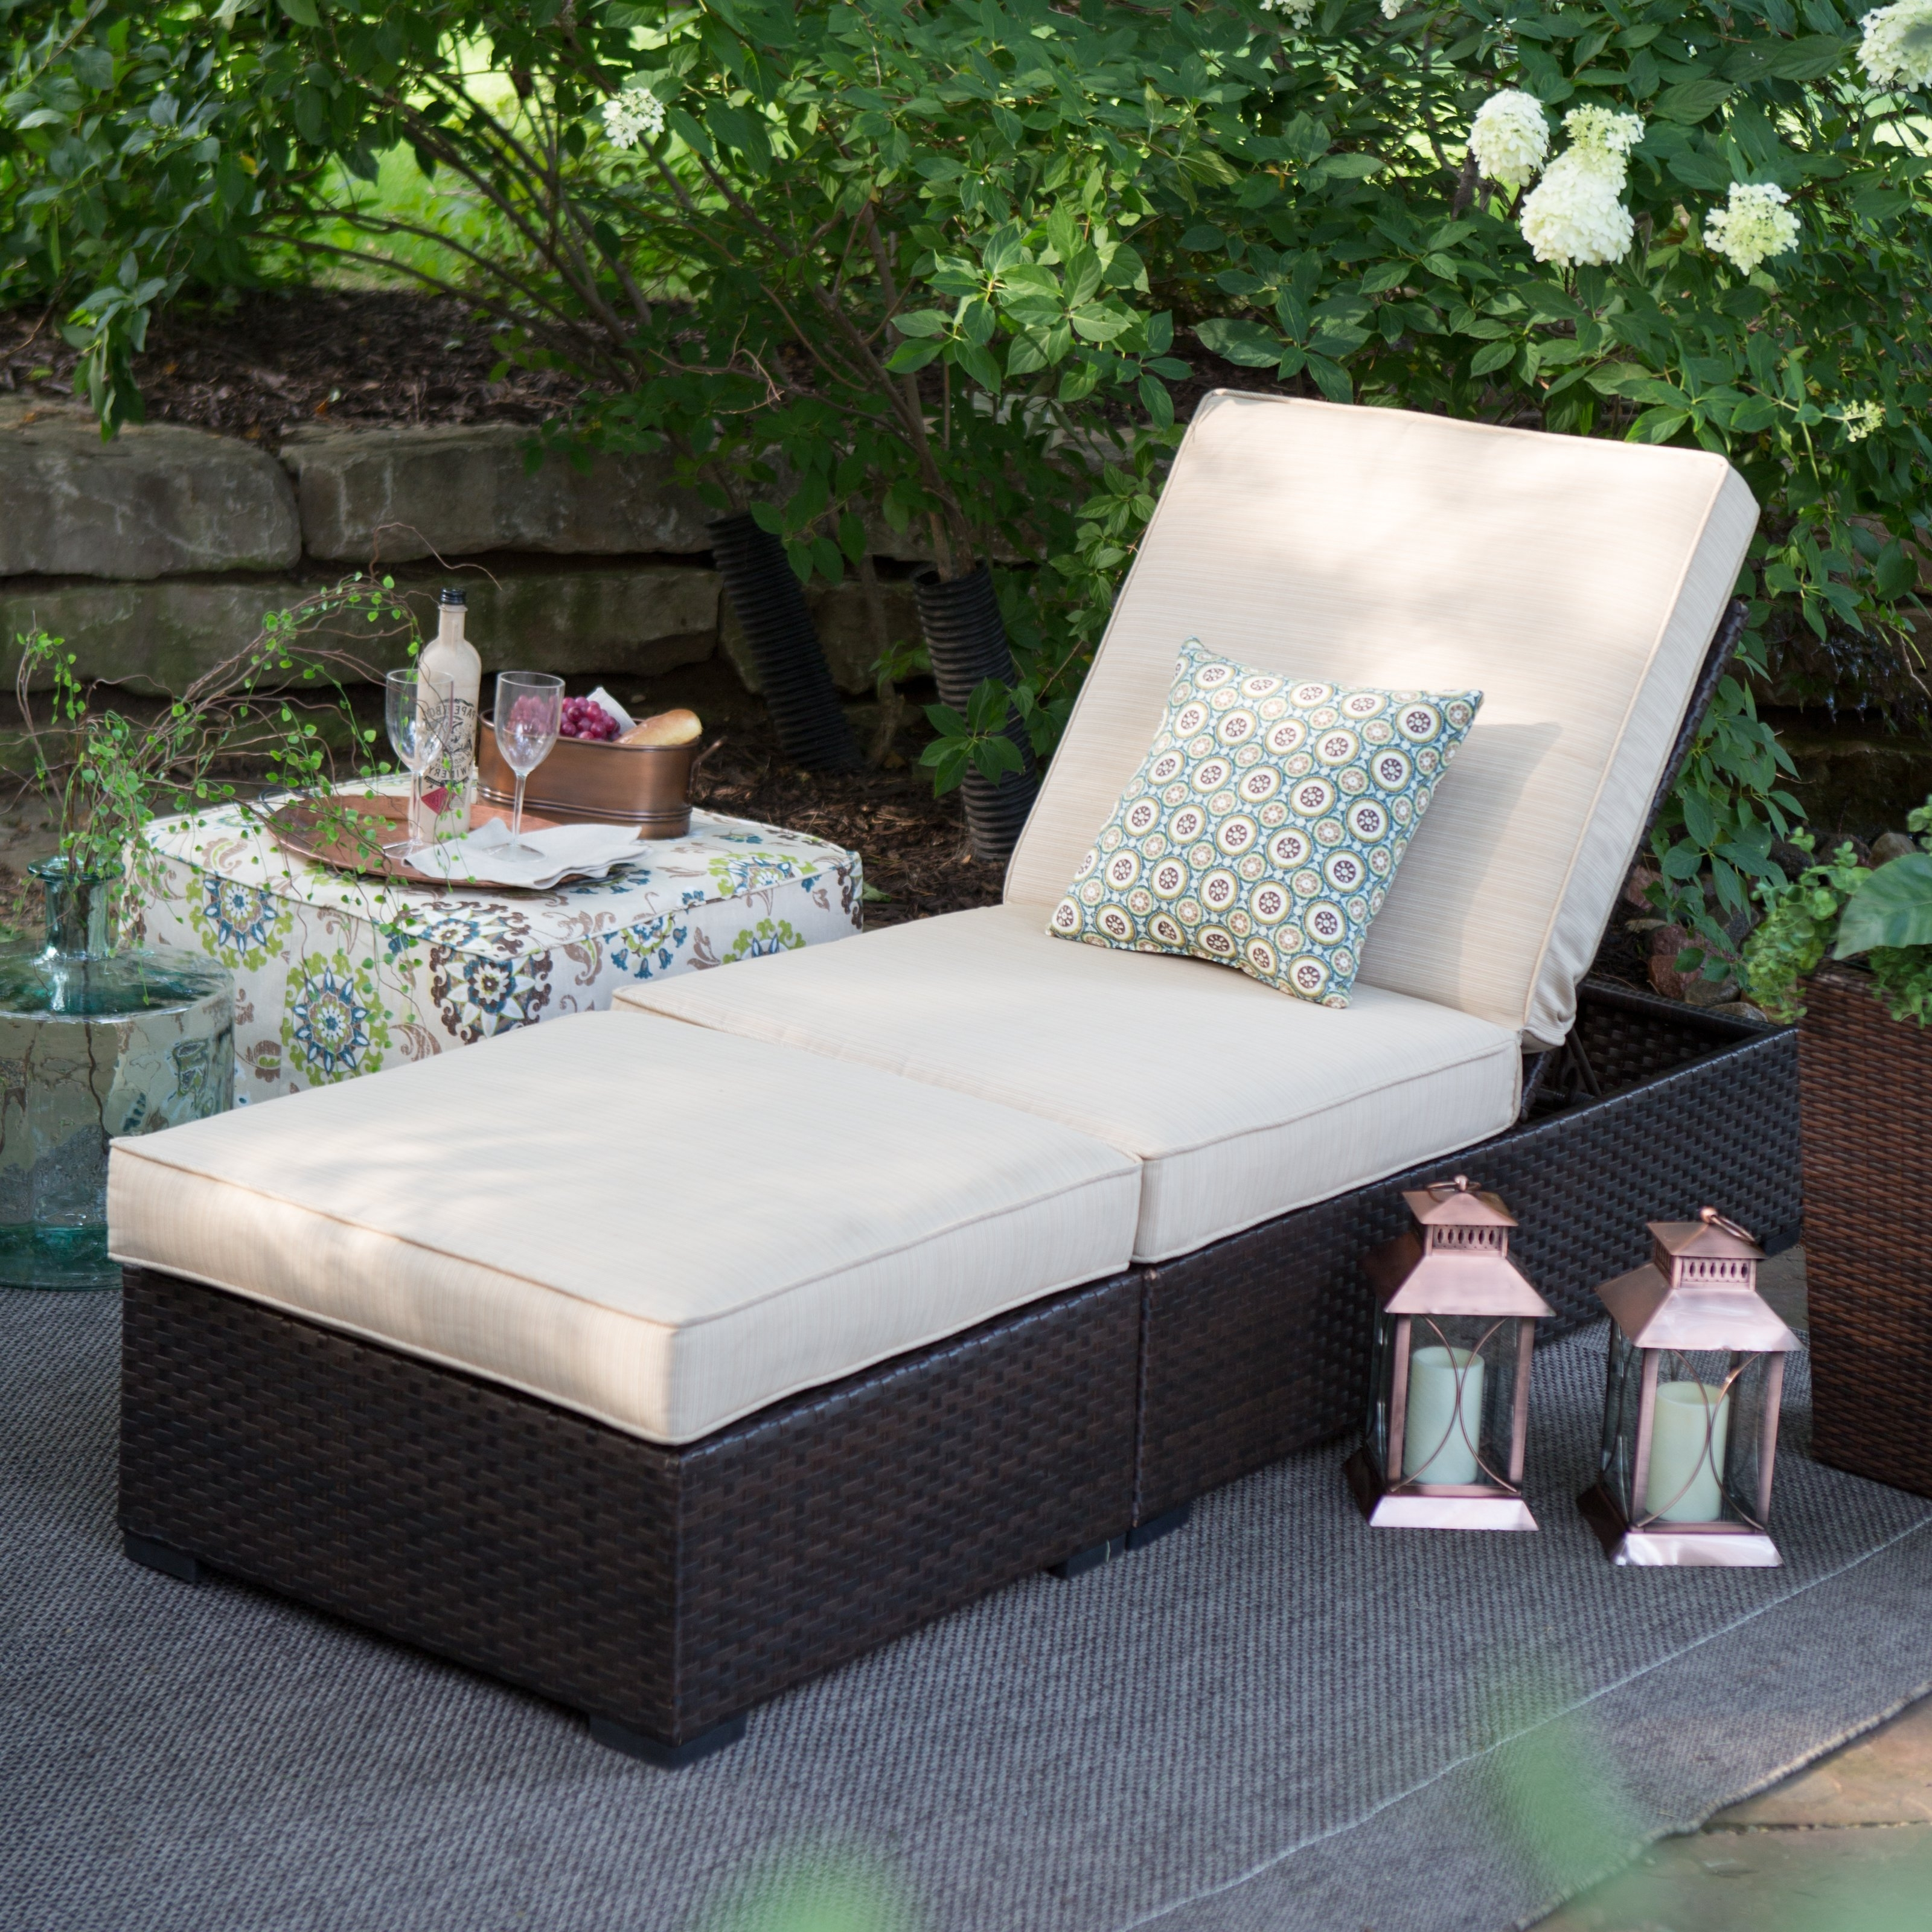 Newest Belham Living Marcella Wide Wicker Chaise Lounge With Ottoman Throughout Wicker Chaise Lounge Chairs For Outdoor (View 9 of 15)